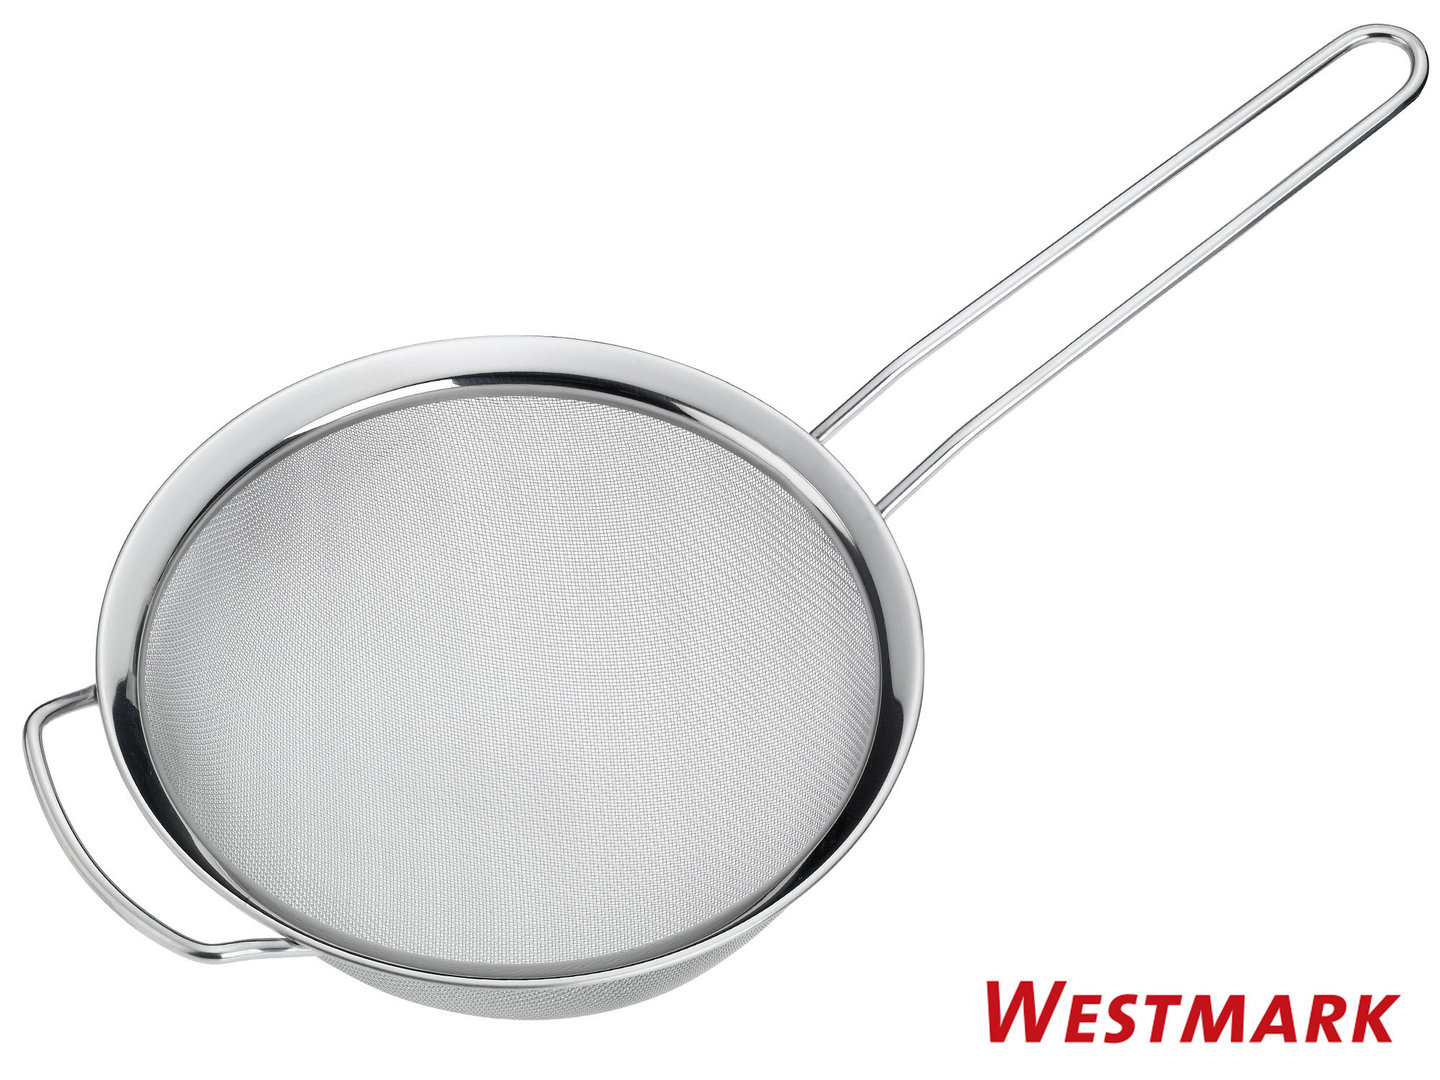 WESTMARK strainer PICANTE 20 cm fine-grid stainless steel mesh